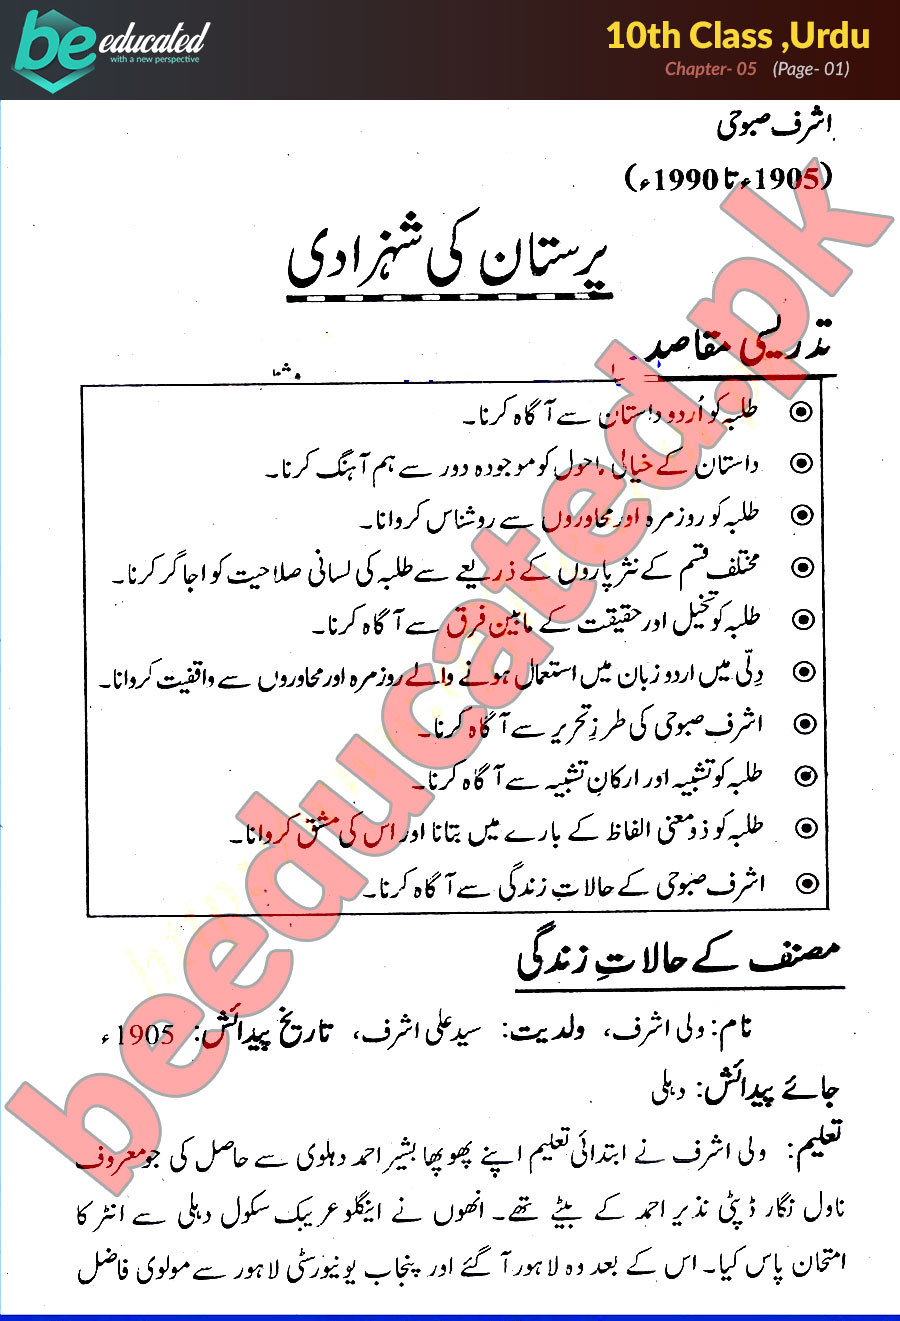 Chapter 5 Urdu 10th Class Notes - Matric Part 2 Notes